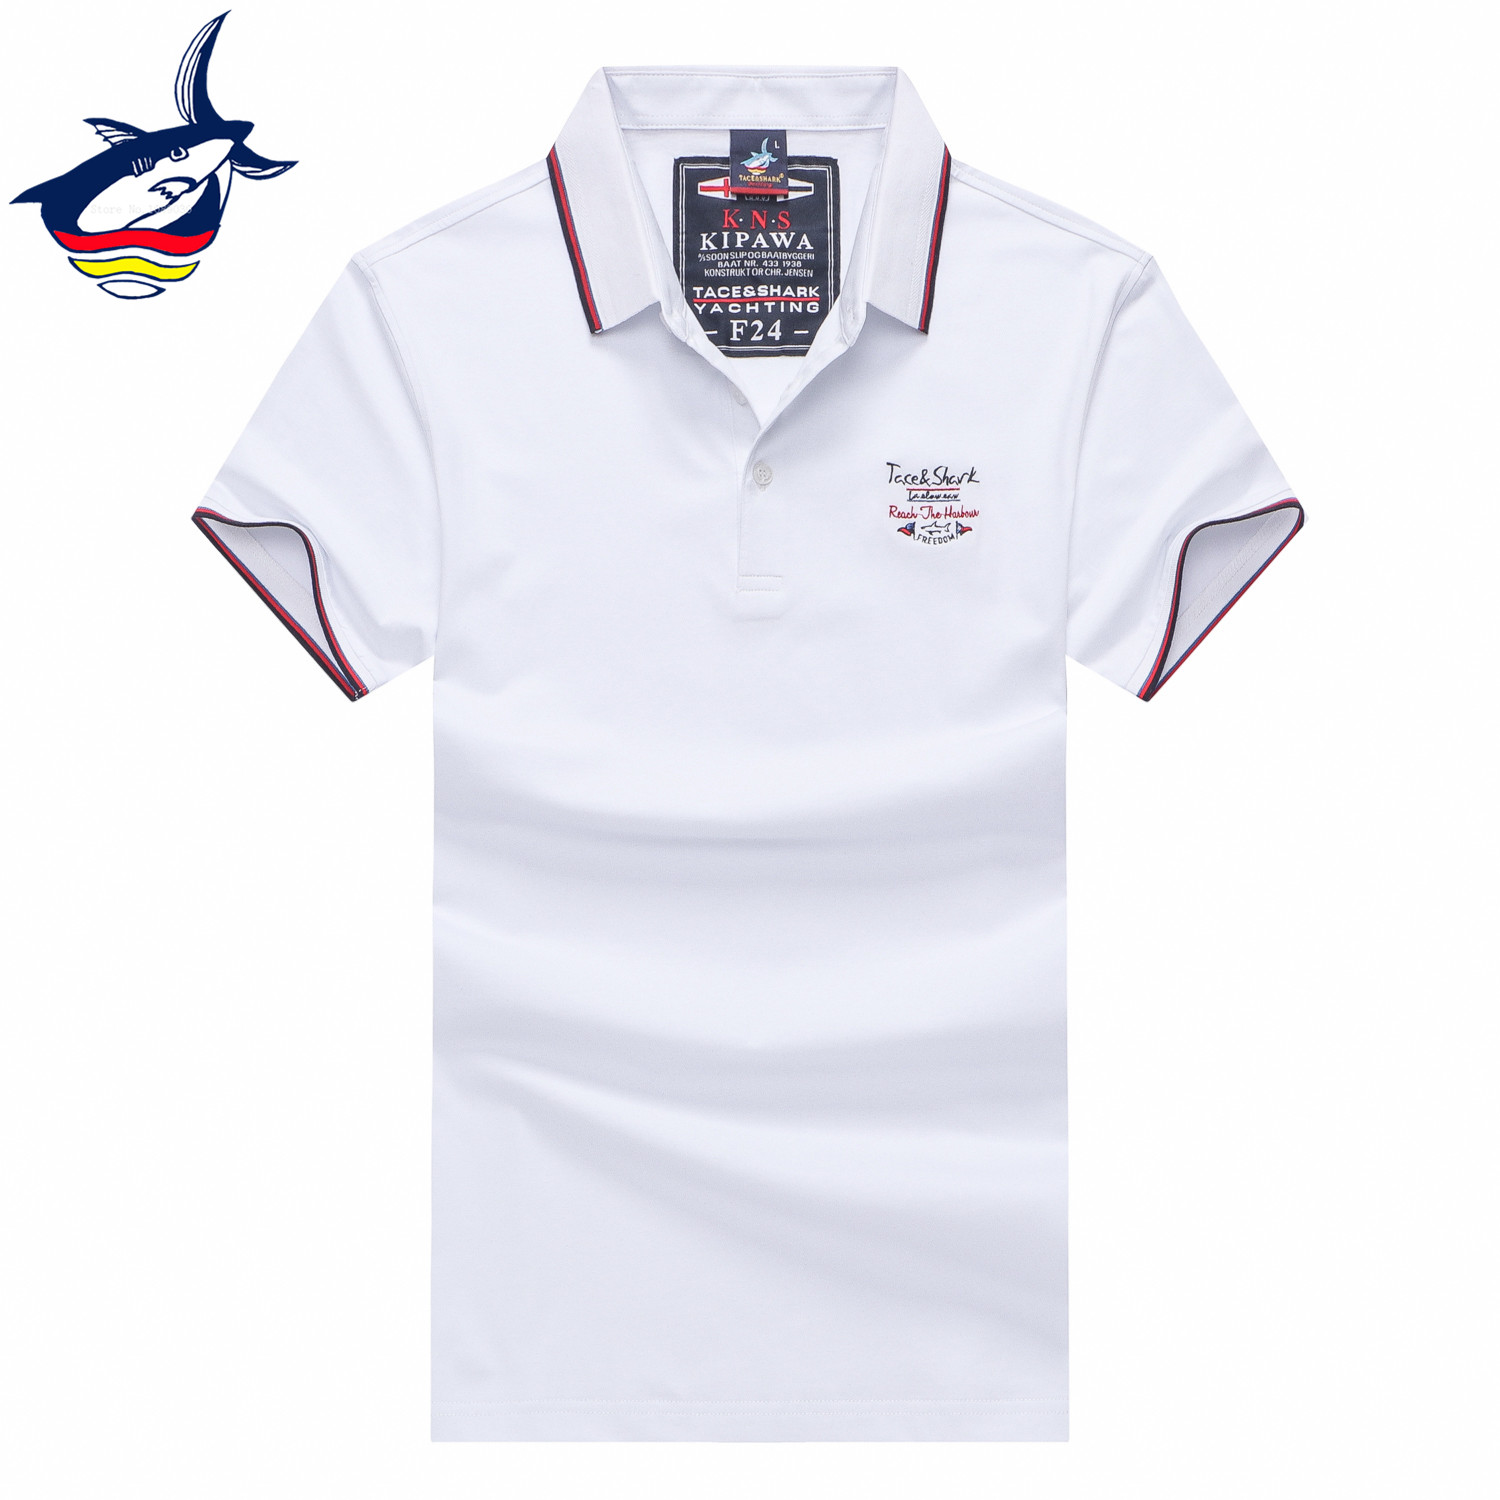 huge discount 20095 f604a US $18.12 47% OFF Tace & Shark polo shirts hombre Summer 2019 men's polo  shirt 3D letter embroidery solid short sleeve camisa casual poloshirt  3XL-in ...